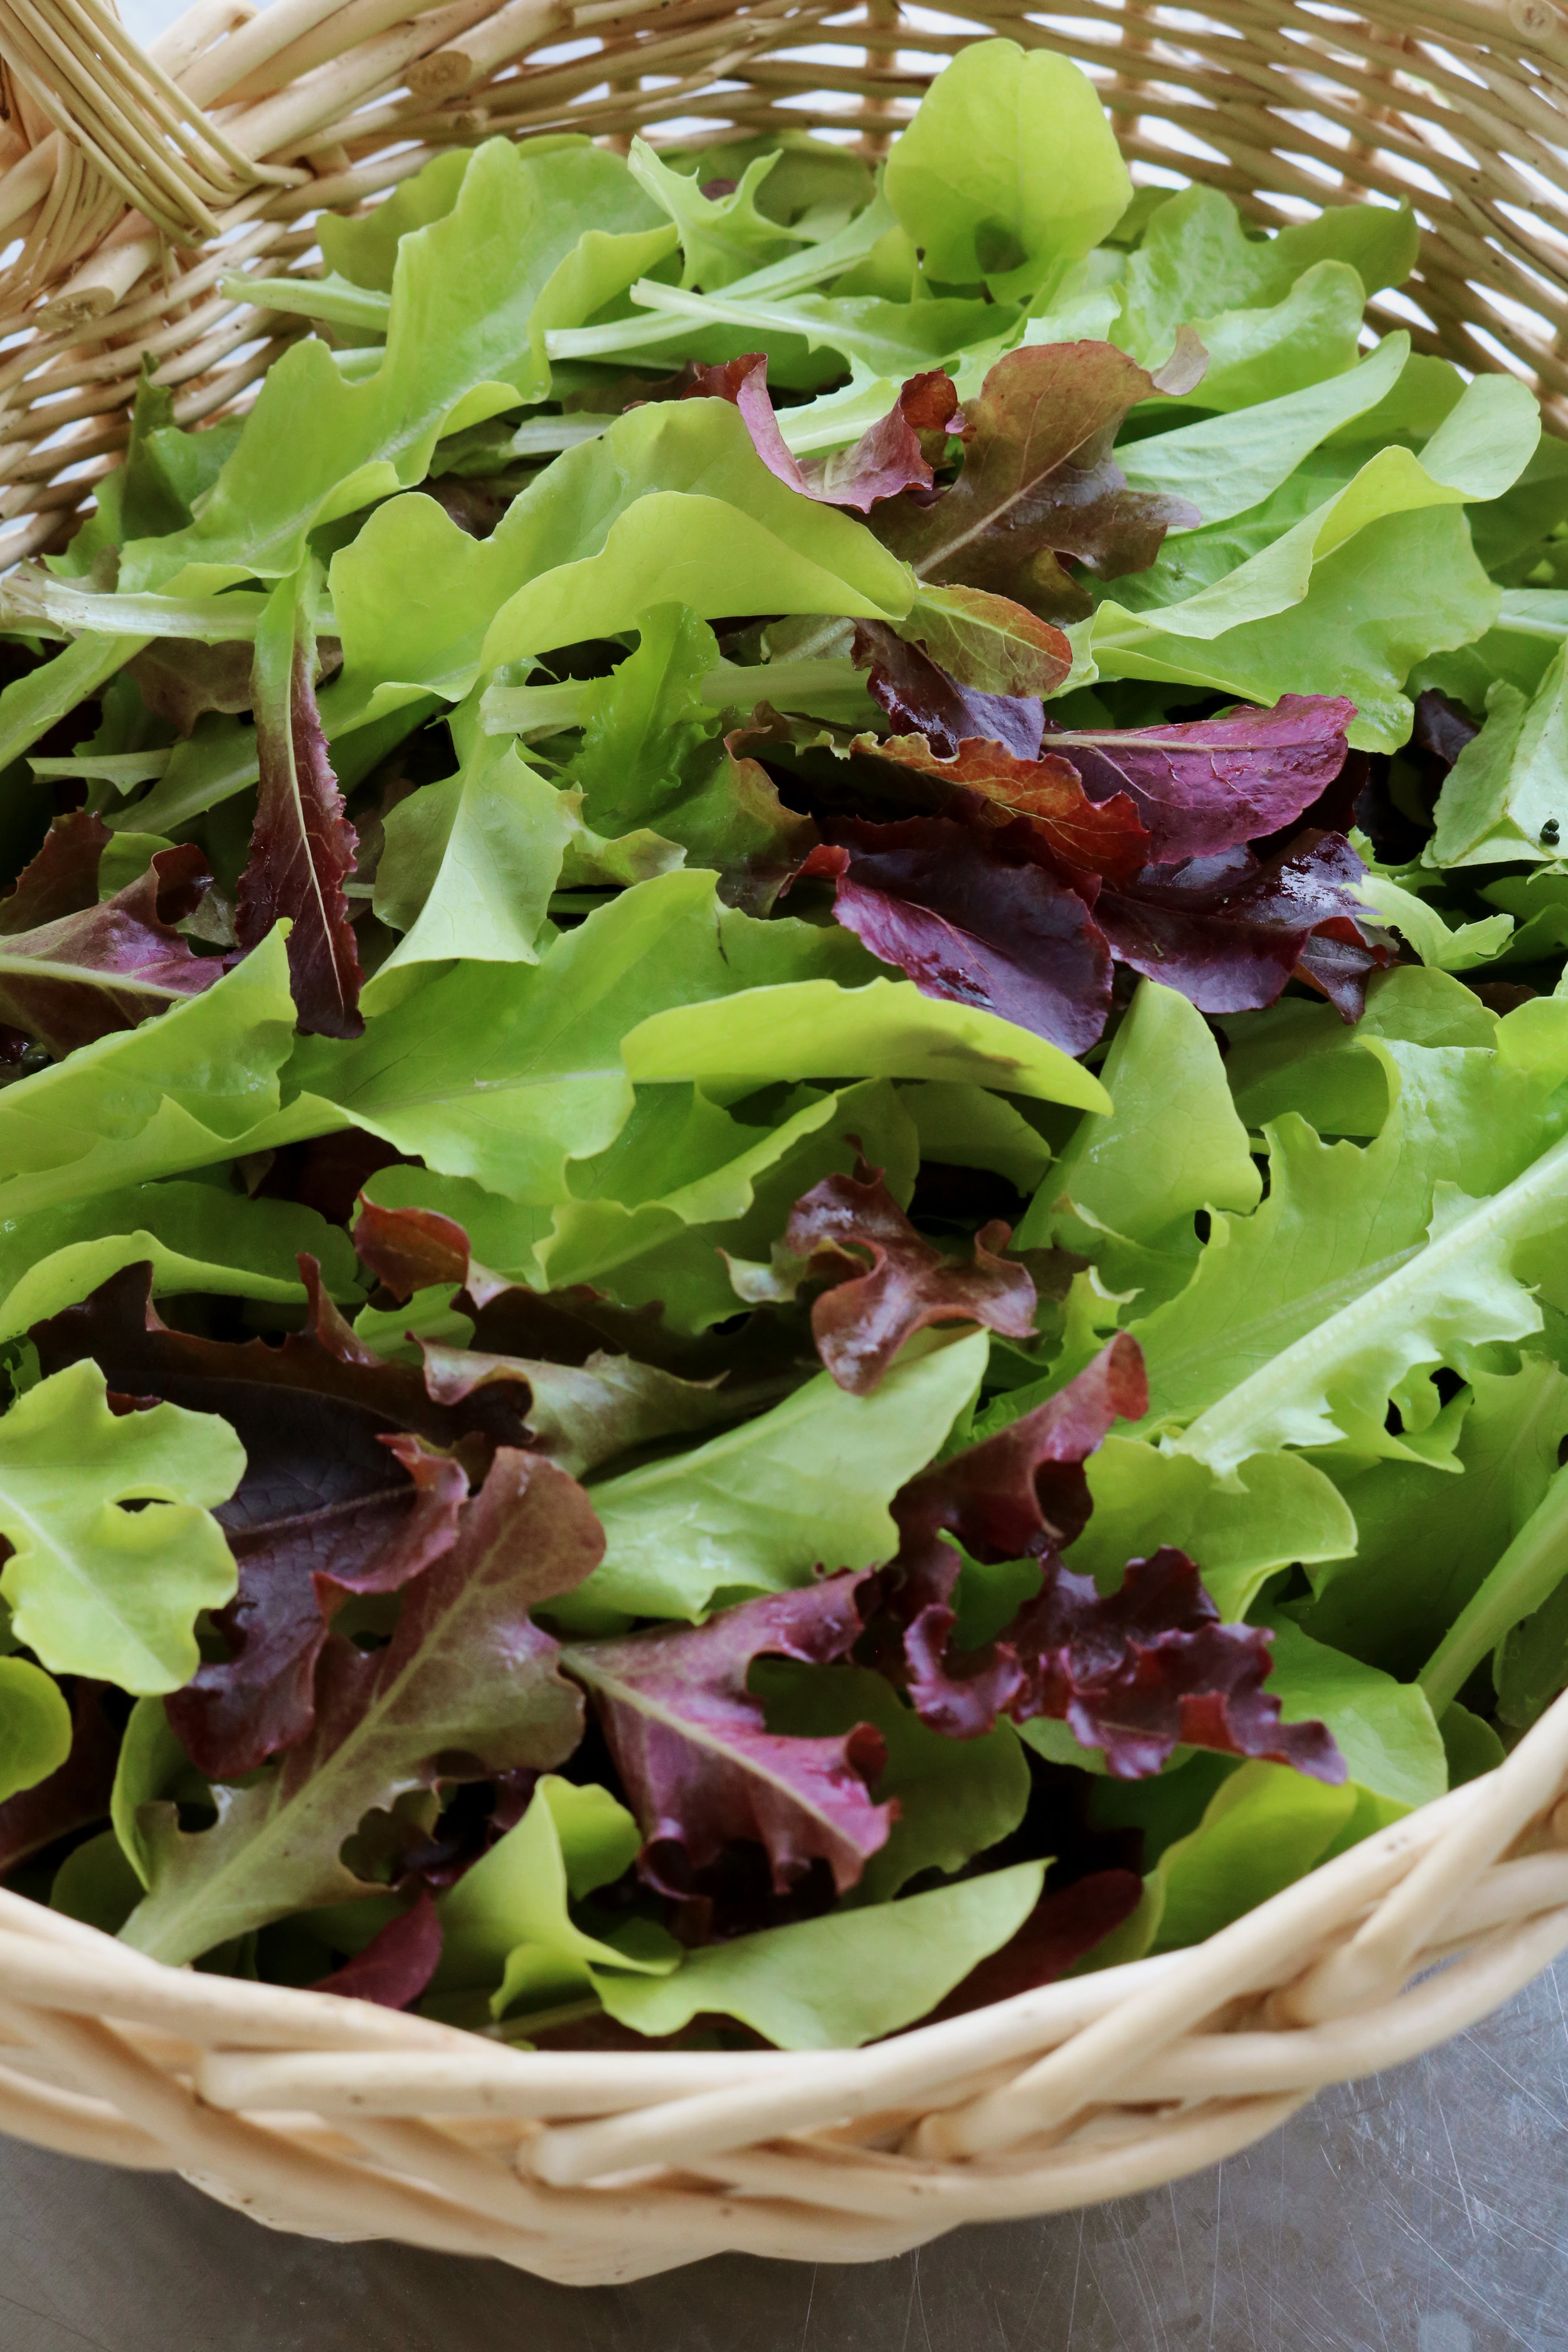 How to Harvest Salad Mix and Greens - Under A Tin Roof Blog